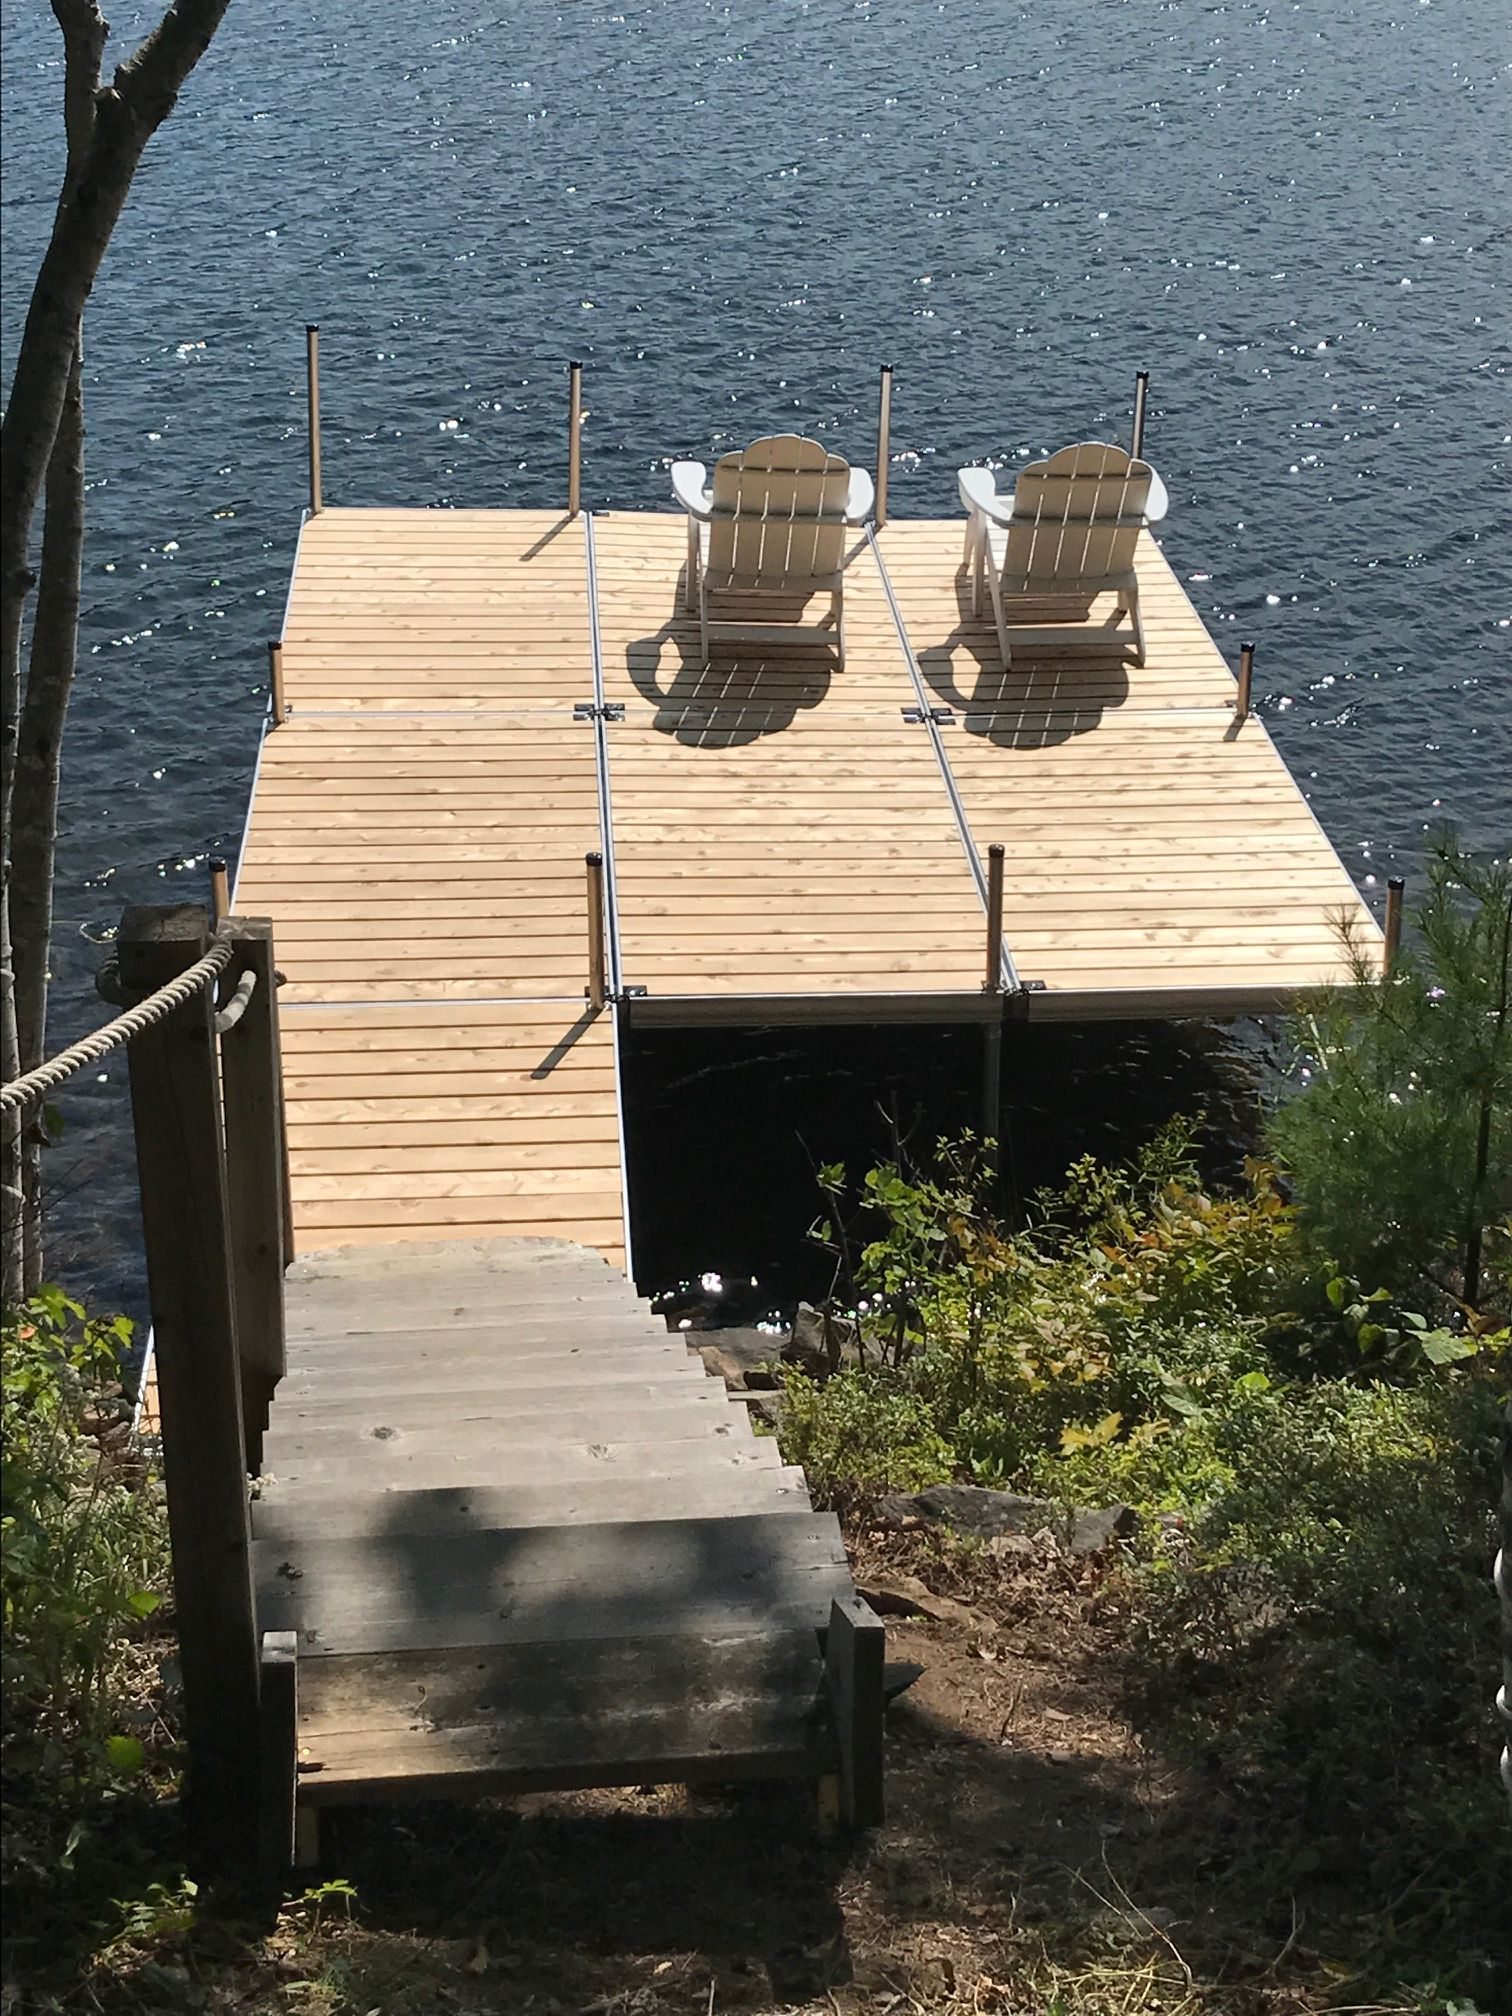 A Nice New Aluminum Dock With Cedar Decking And A Couple Of